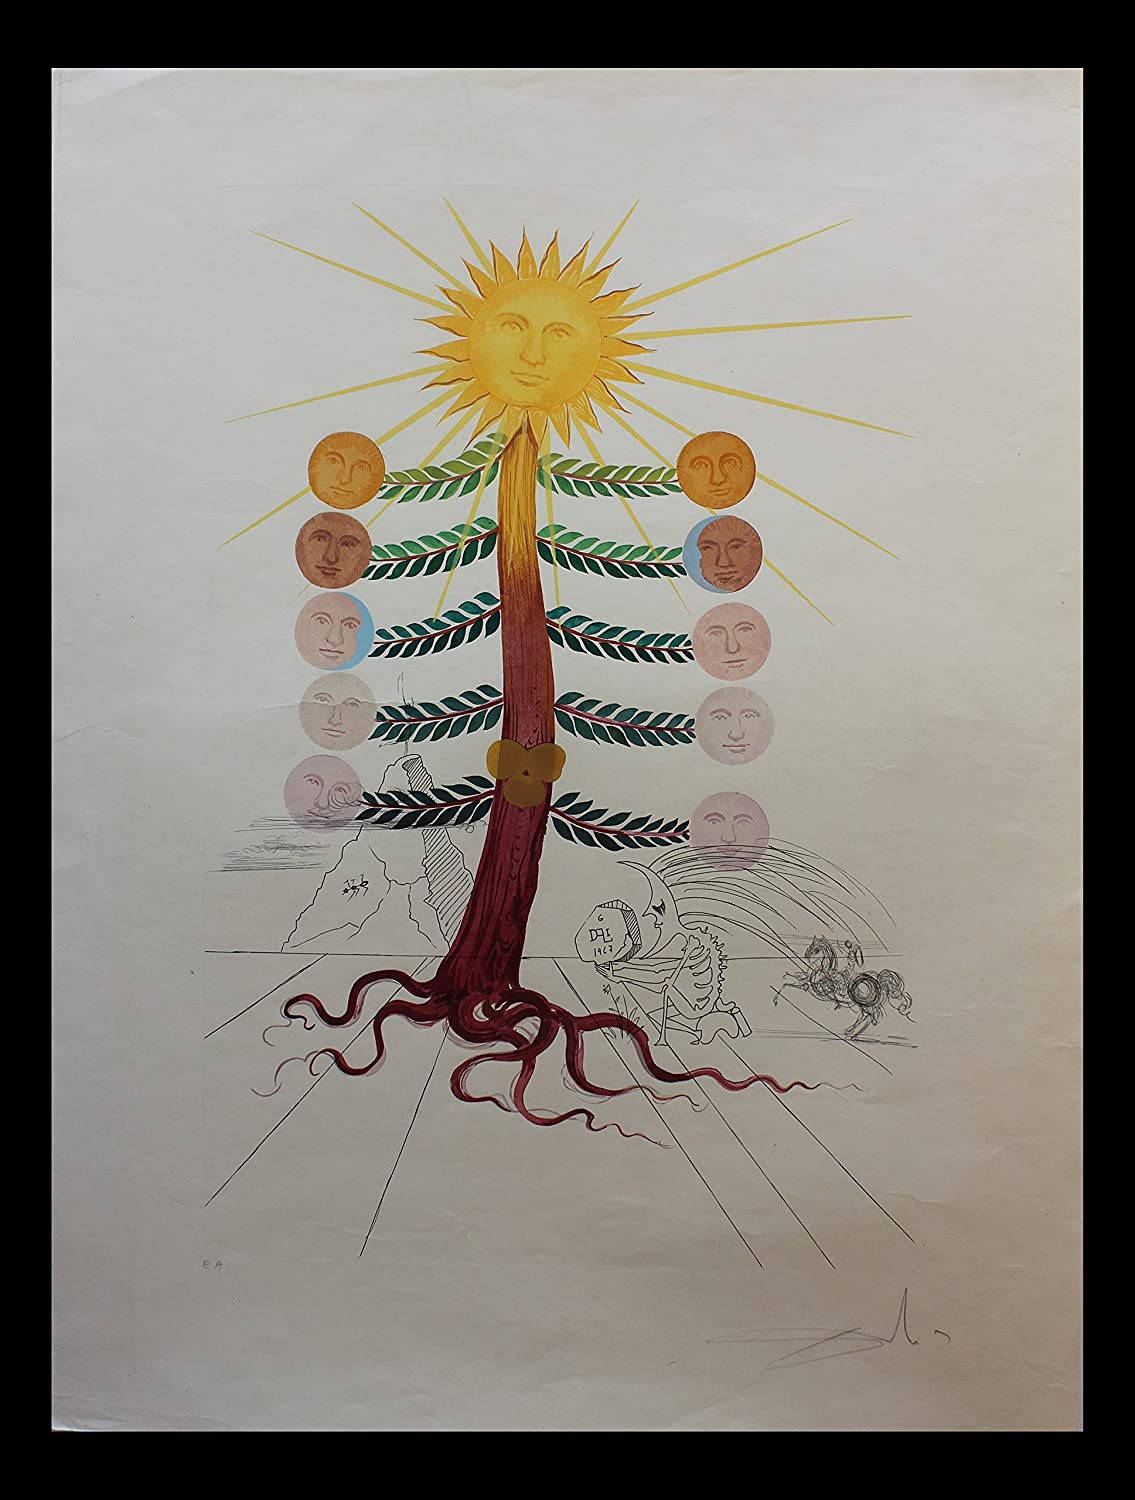 Salvador Dali- Luna Geminata (Moon) Catalog no. OI 68-3 F Limited Edition Lithograph with original engraved remarques plus color Flora Dalinae | Certificate of Authenticity by Frank Hunter | 1968